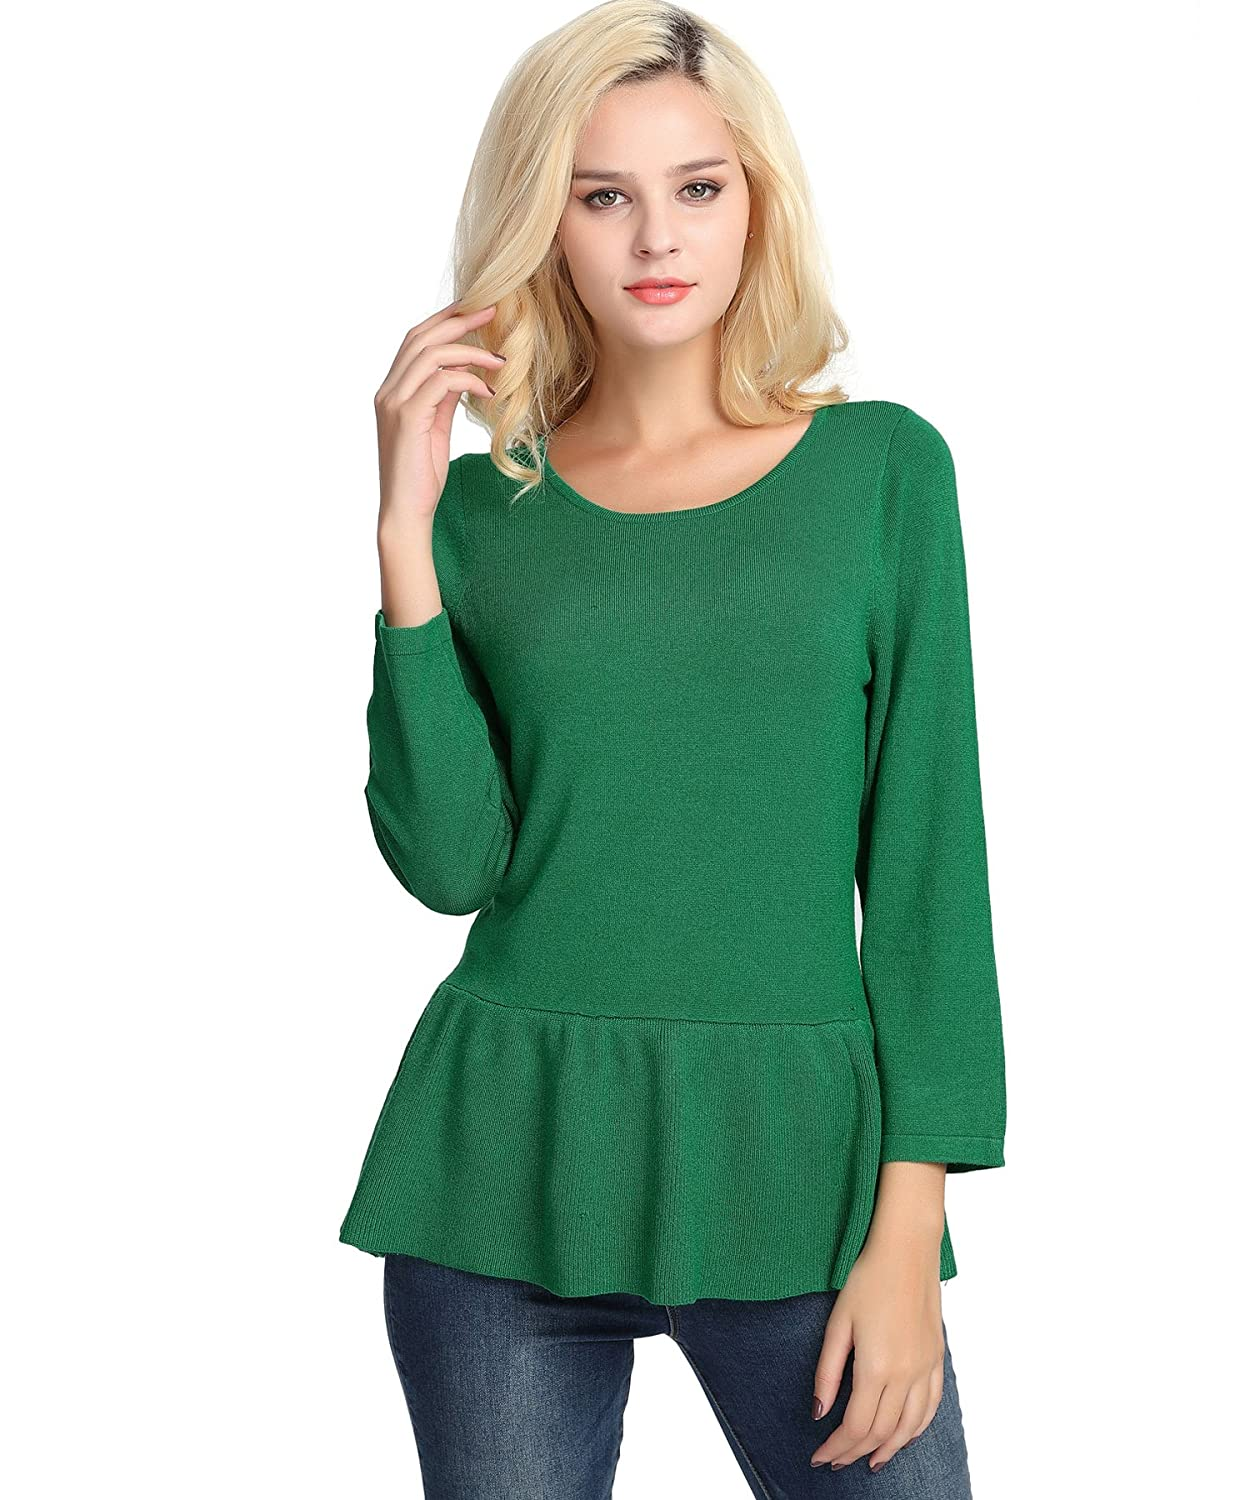 380ab3f0300 Soft and breathable high stretchy knit material gives you all day max  comfort. ♢Casual crew neck 3 4 sleeves sweater creates a relax on you and  calm effect ...